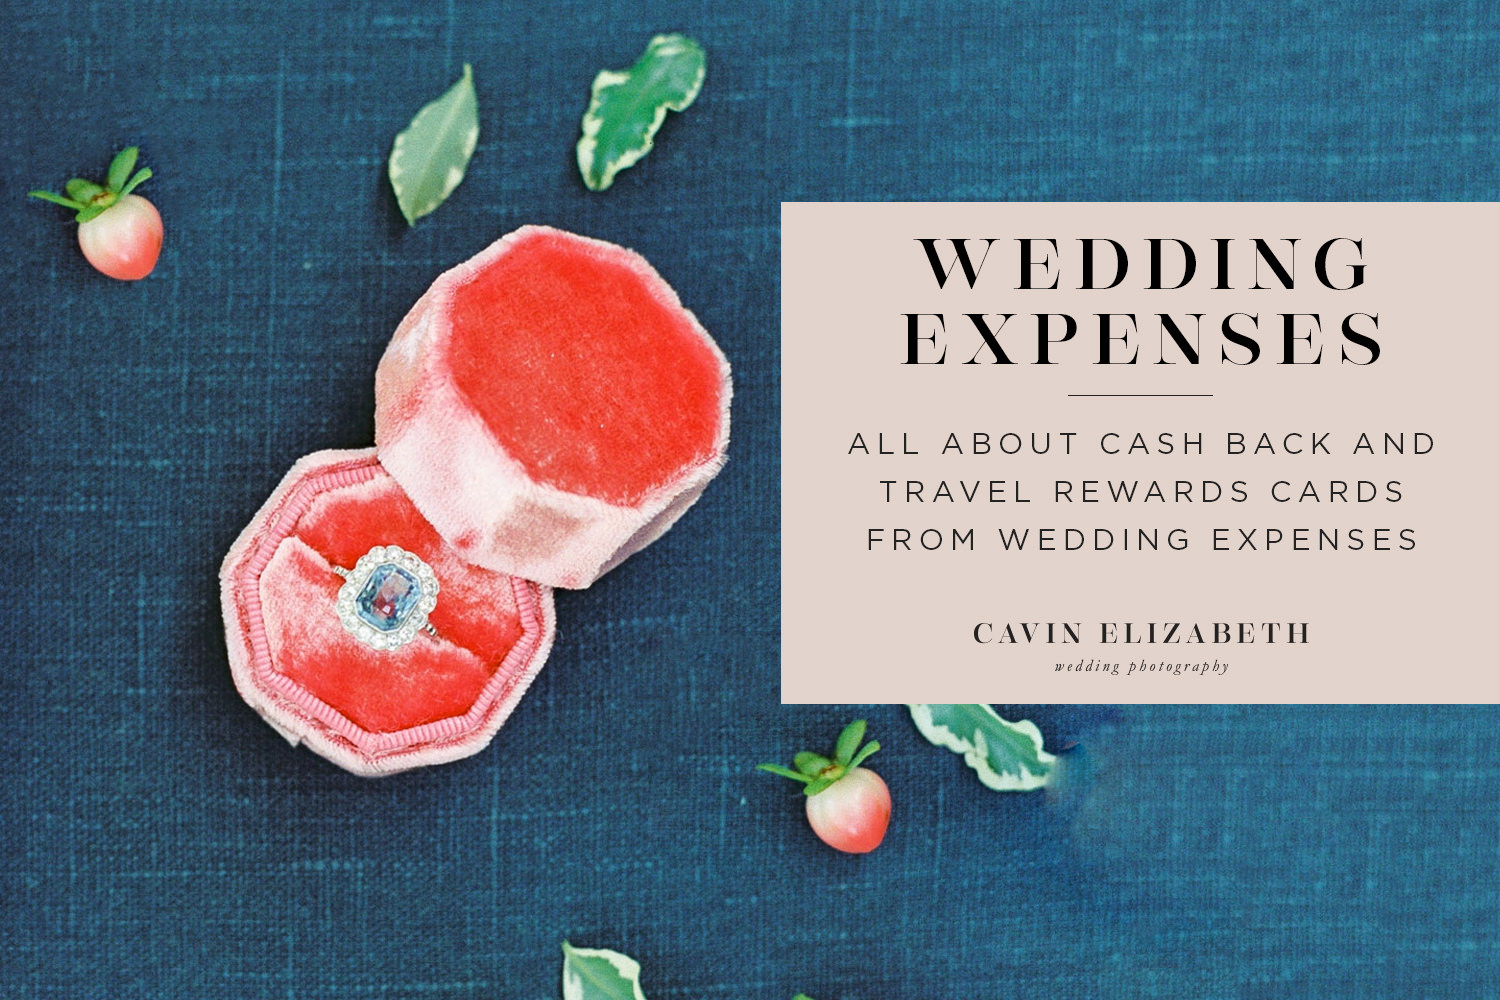 Wedding Expenses with Credit Cards: Cash Back and Travel Rewards Cards for weddings